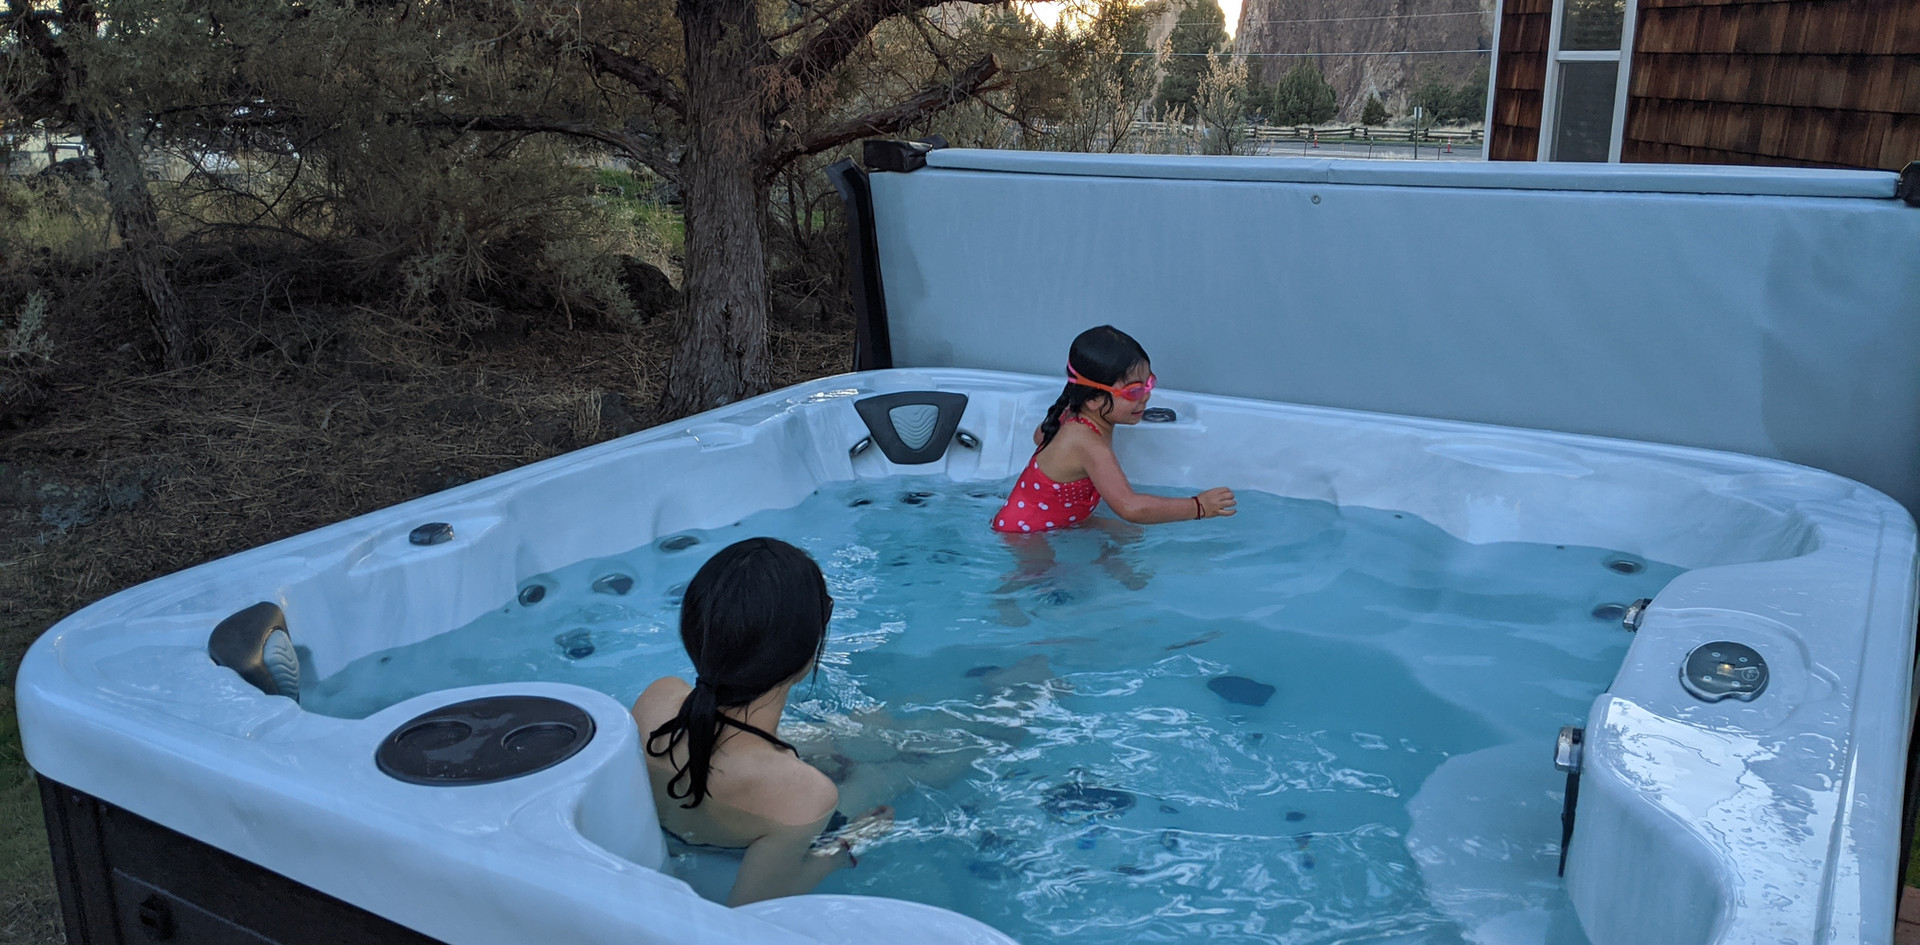 7-person hot tub, looking west